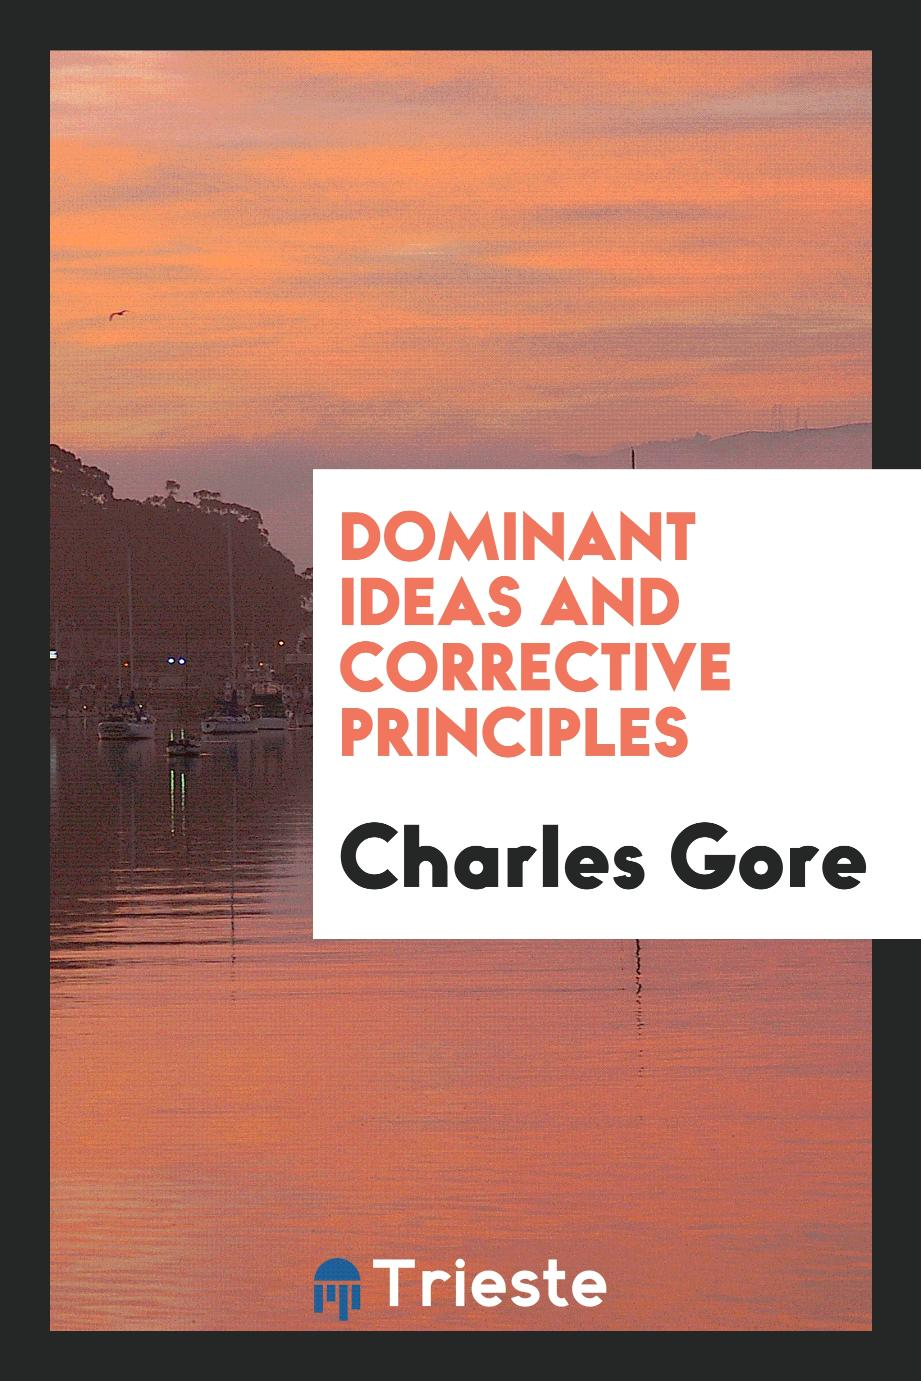 Dominant Ideas and Corrective Principles